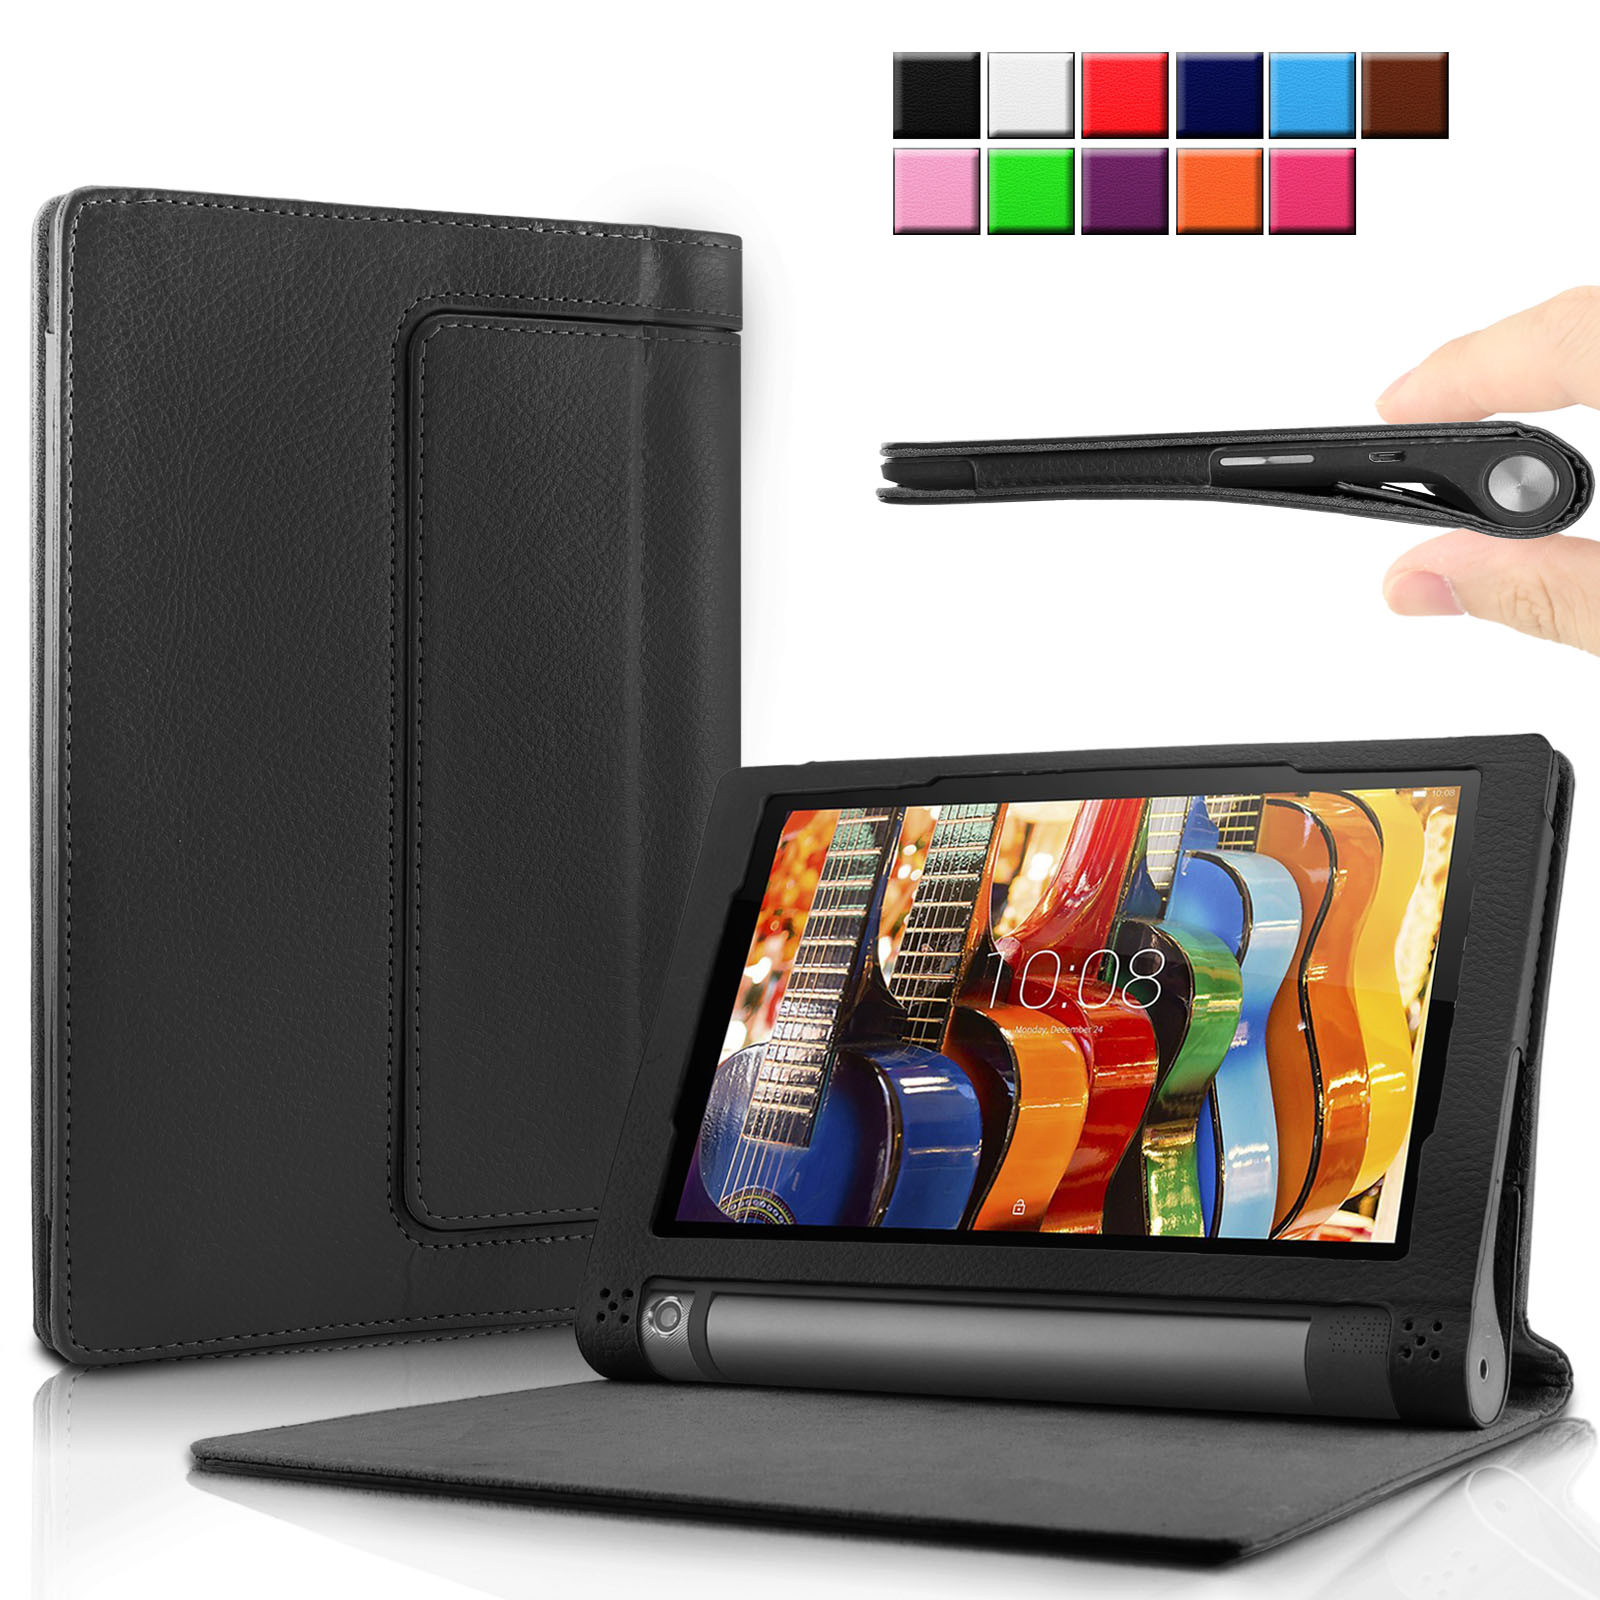 Infiland Folio PU Leather Cover Case For Lenovo Yoga Tab 3 10 10.1-Inch Tablet, Black